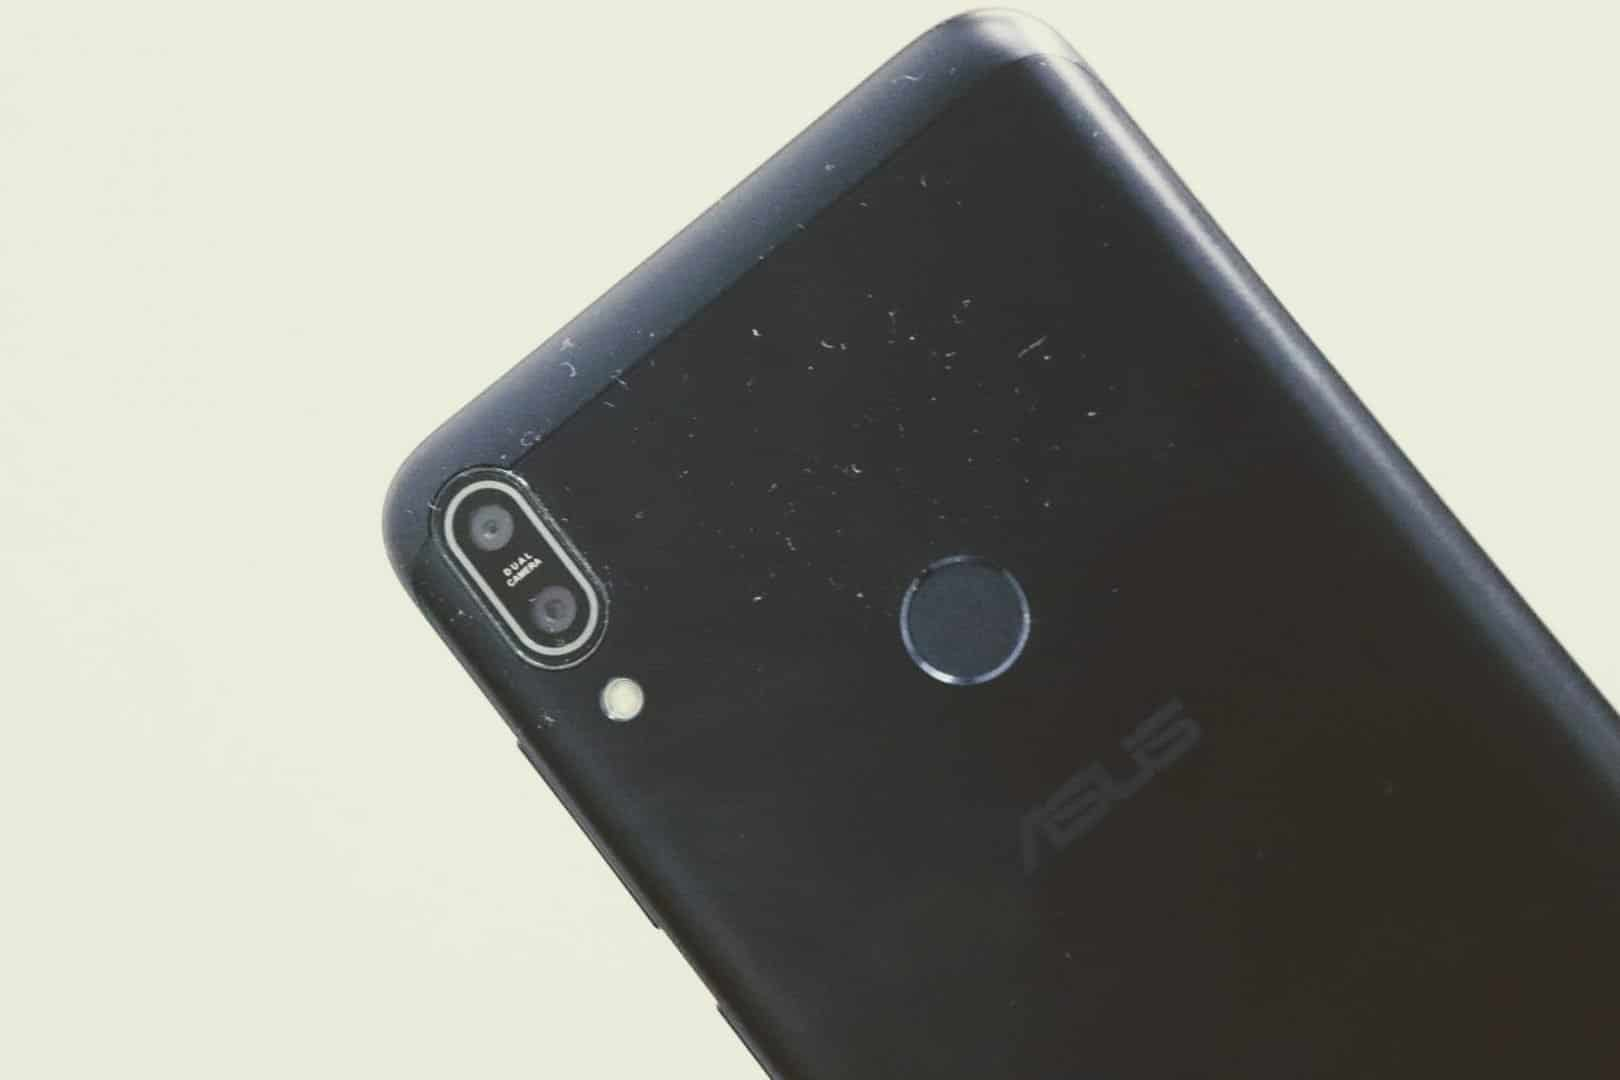 """Zenfone Max Pro (M1) Hands-On Review - """"Made for India"""" Smartphone - 3"""